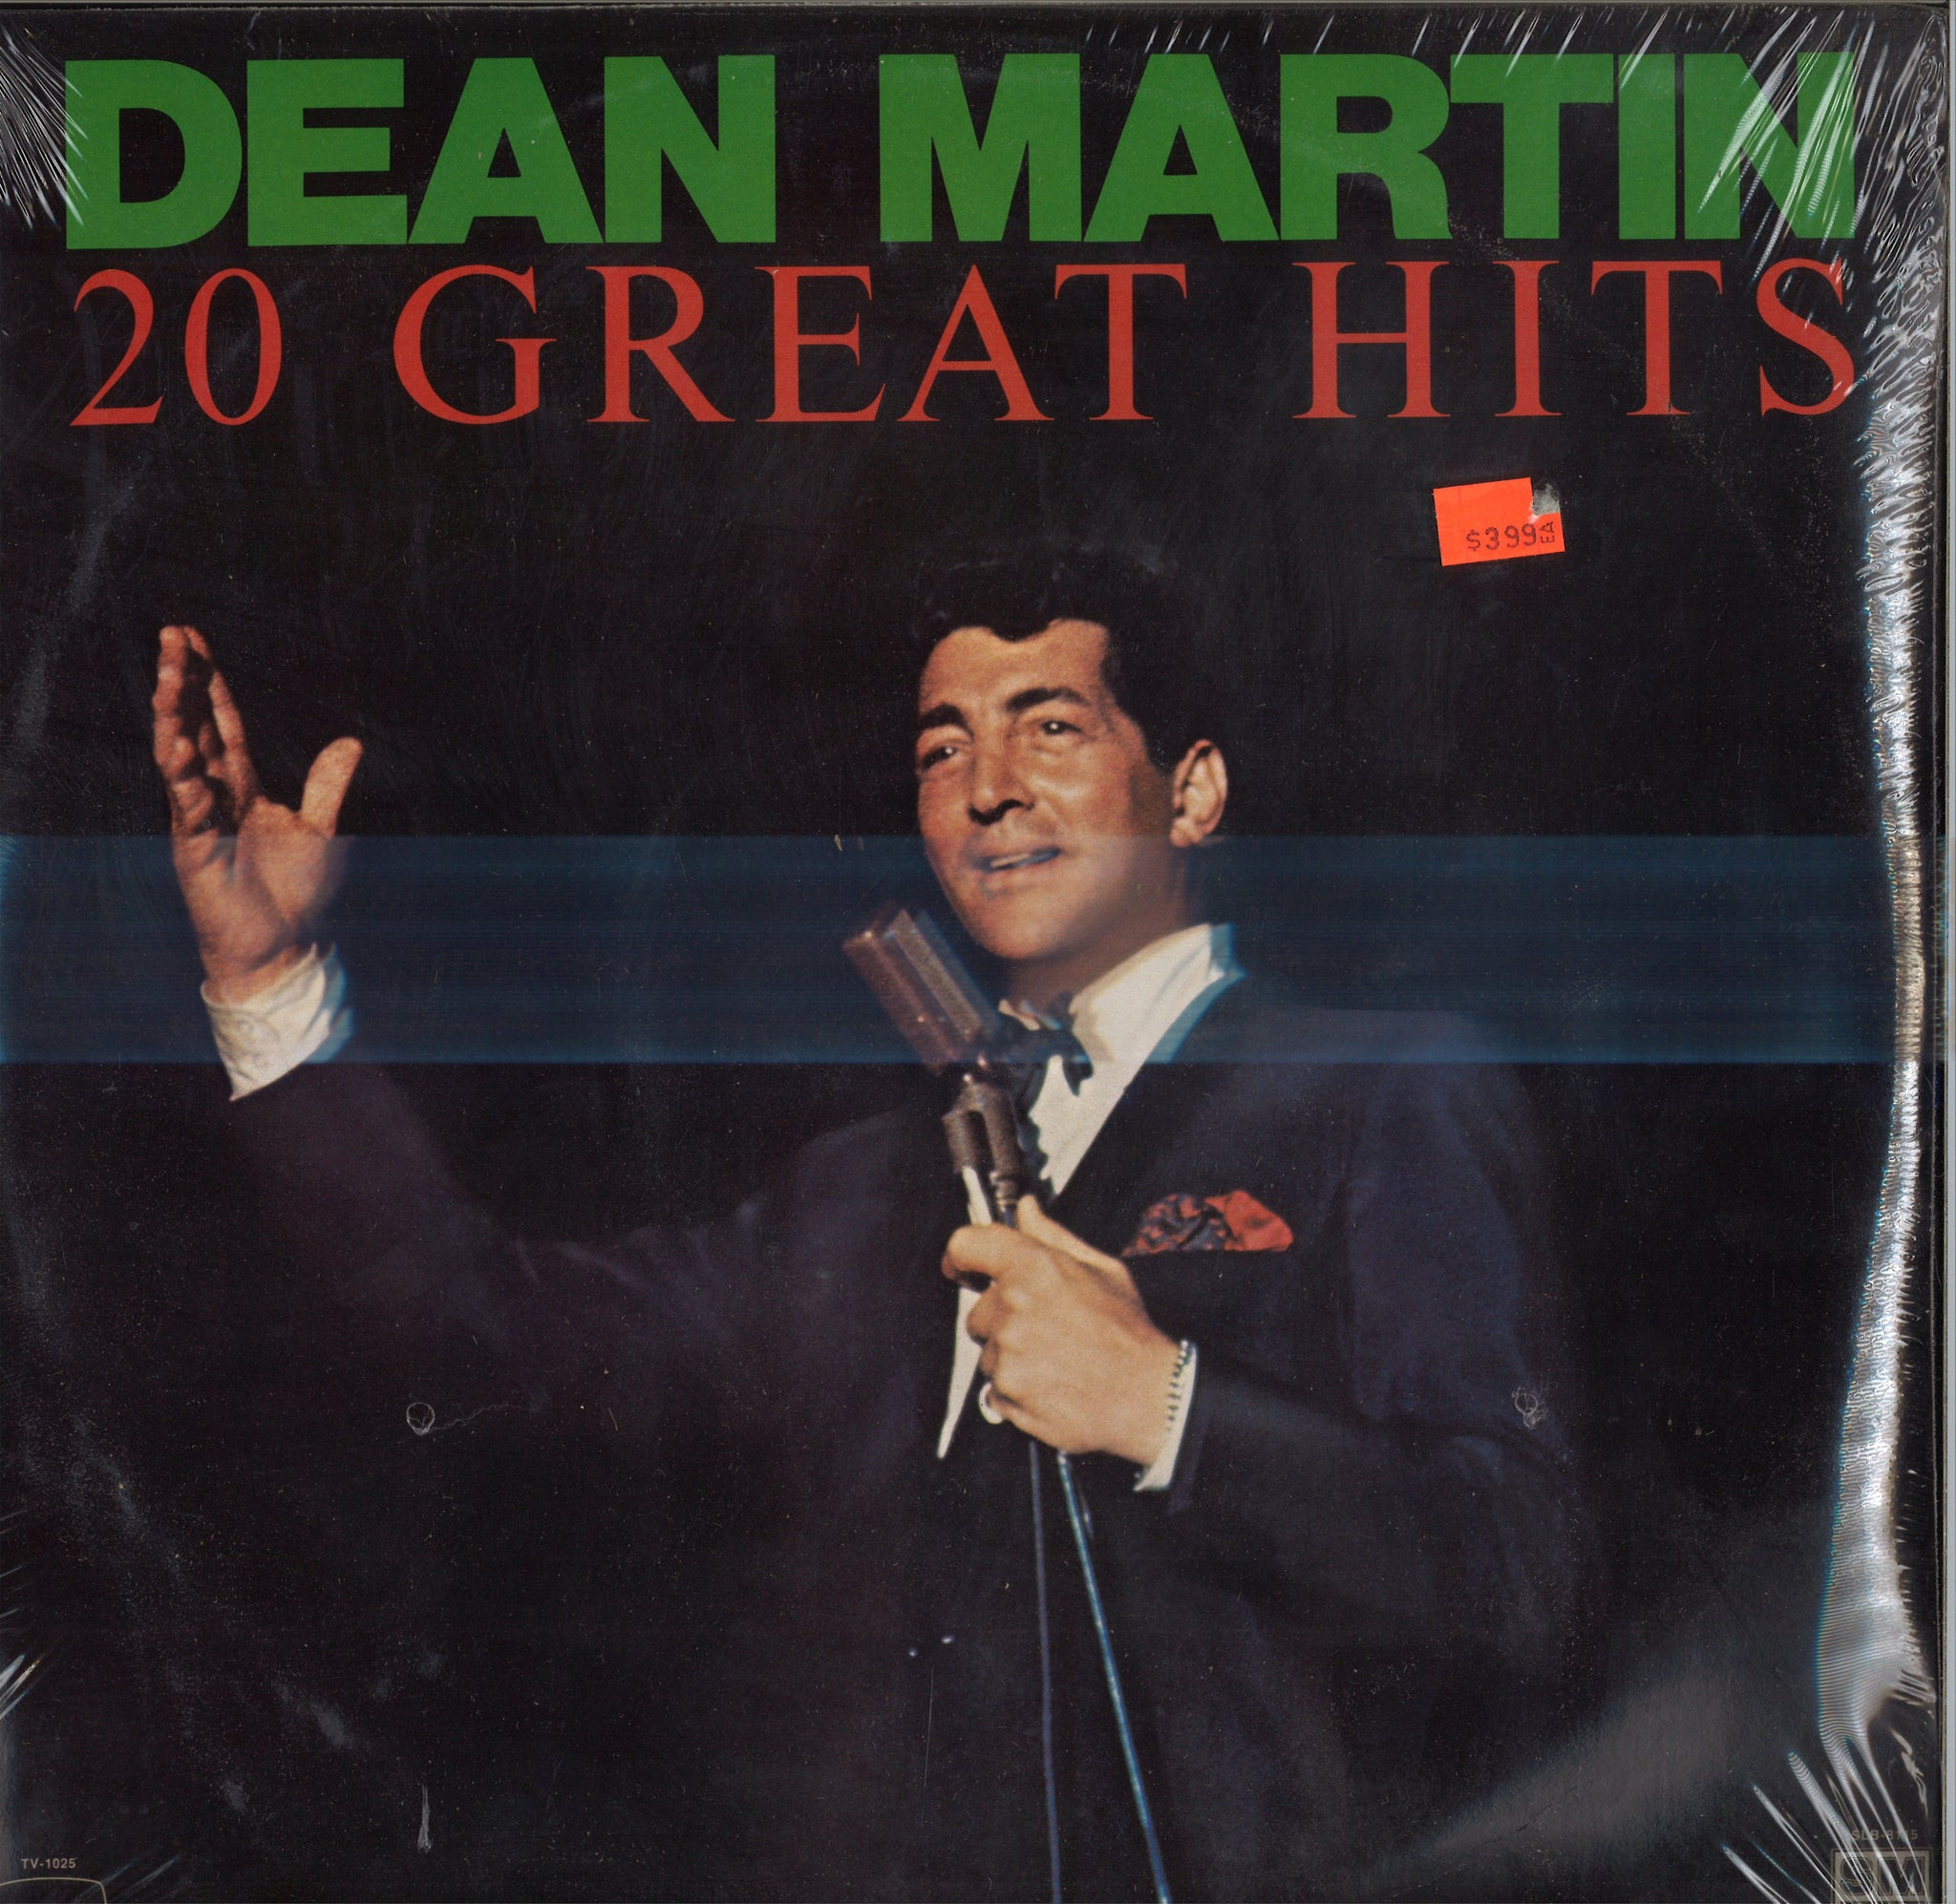 Dean Martin 20 Great Hits